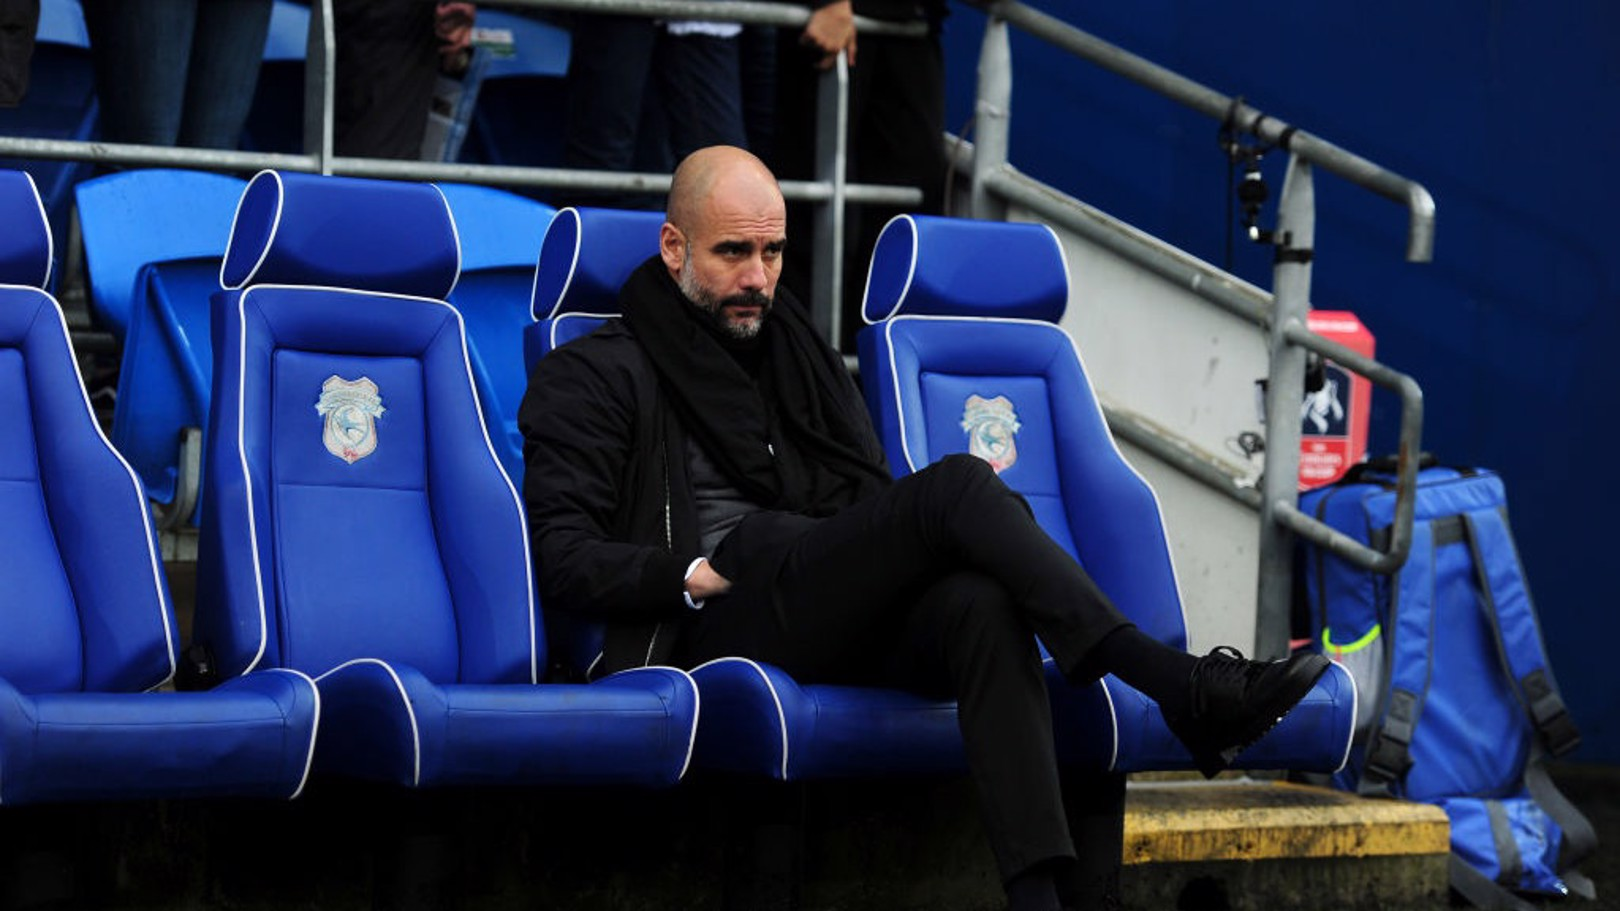 PEP WATCH: The manager takes his seat at the Cardiff City Stadium.